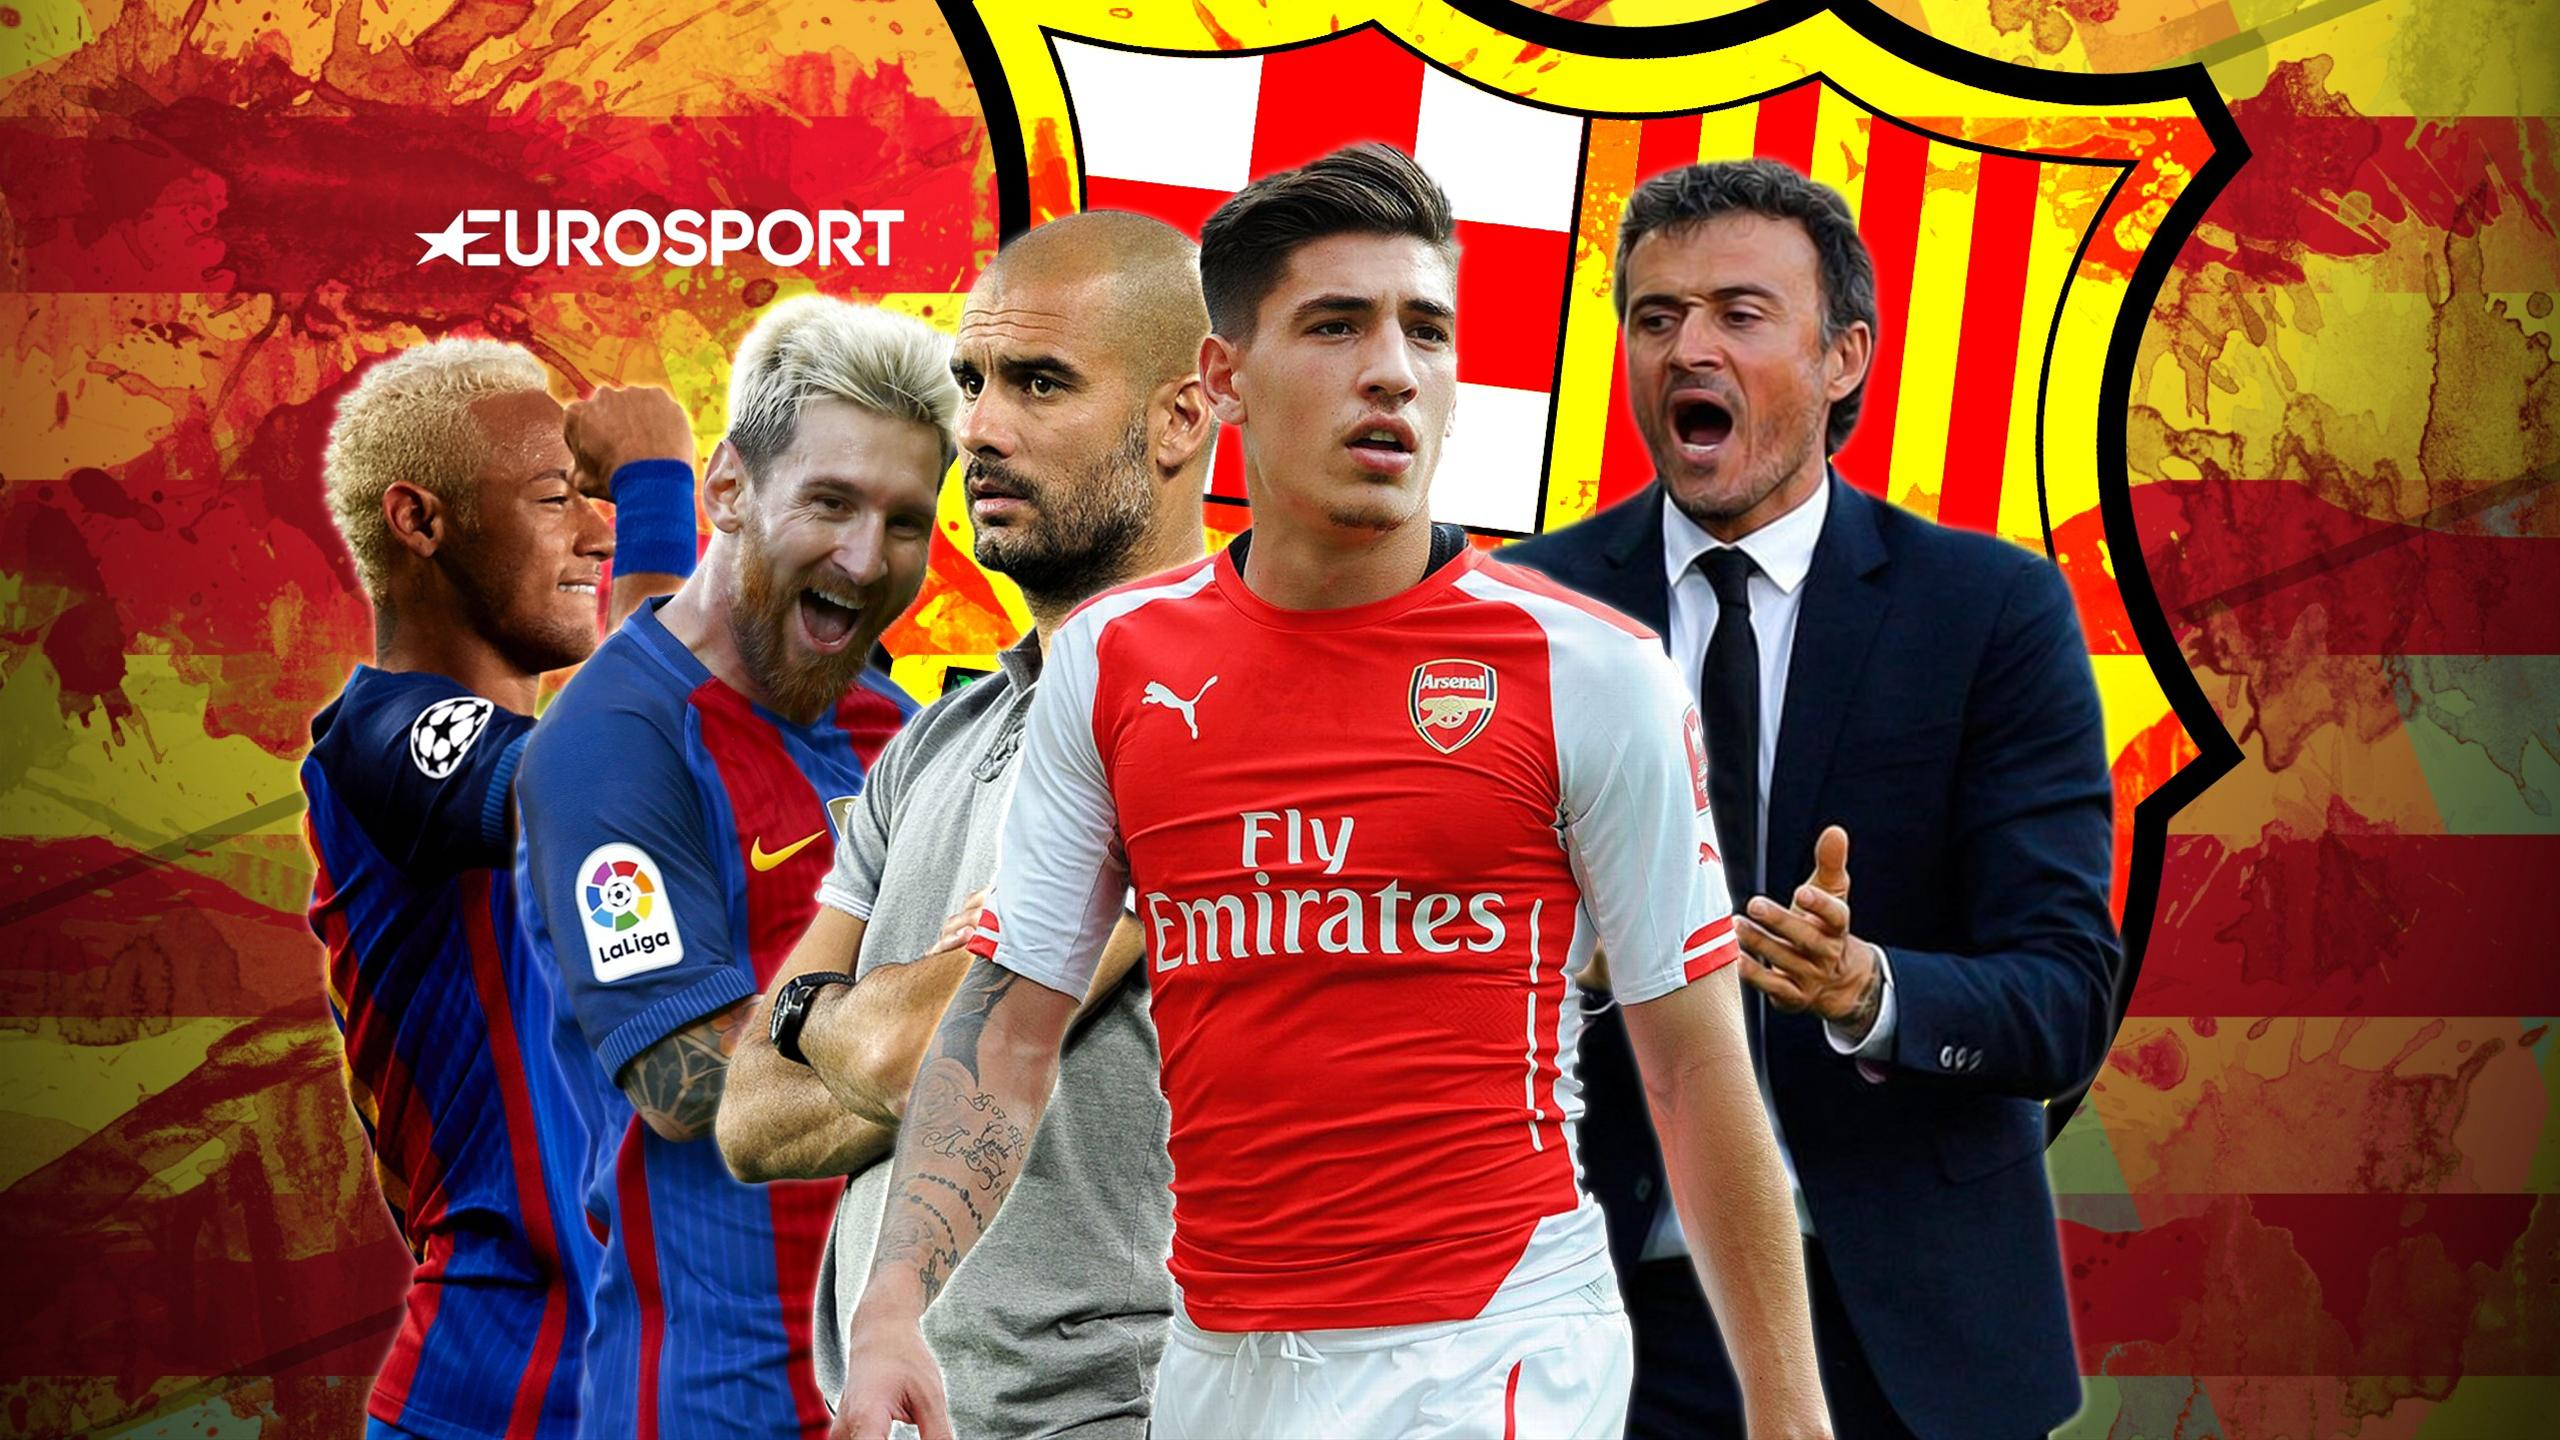 Euro Papers: Barcelona attempt to poach Bellerin - City fail in Neymar and Messi bid